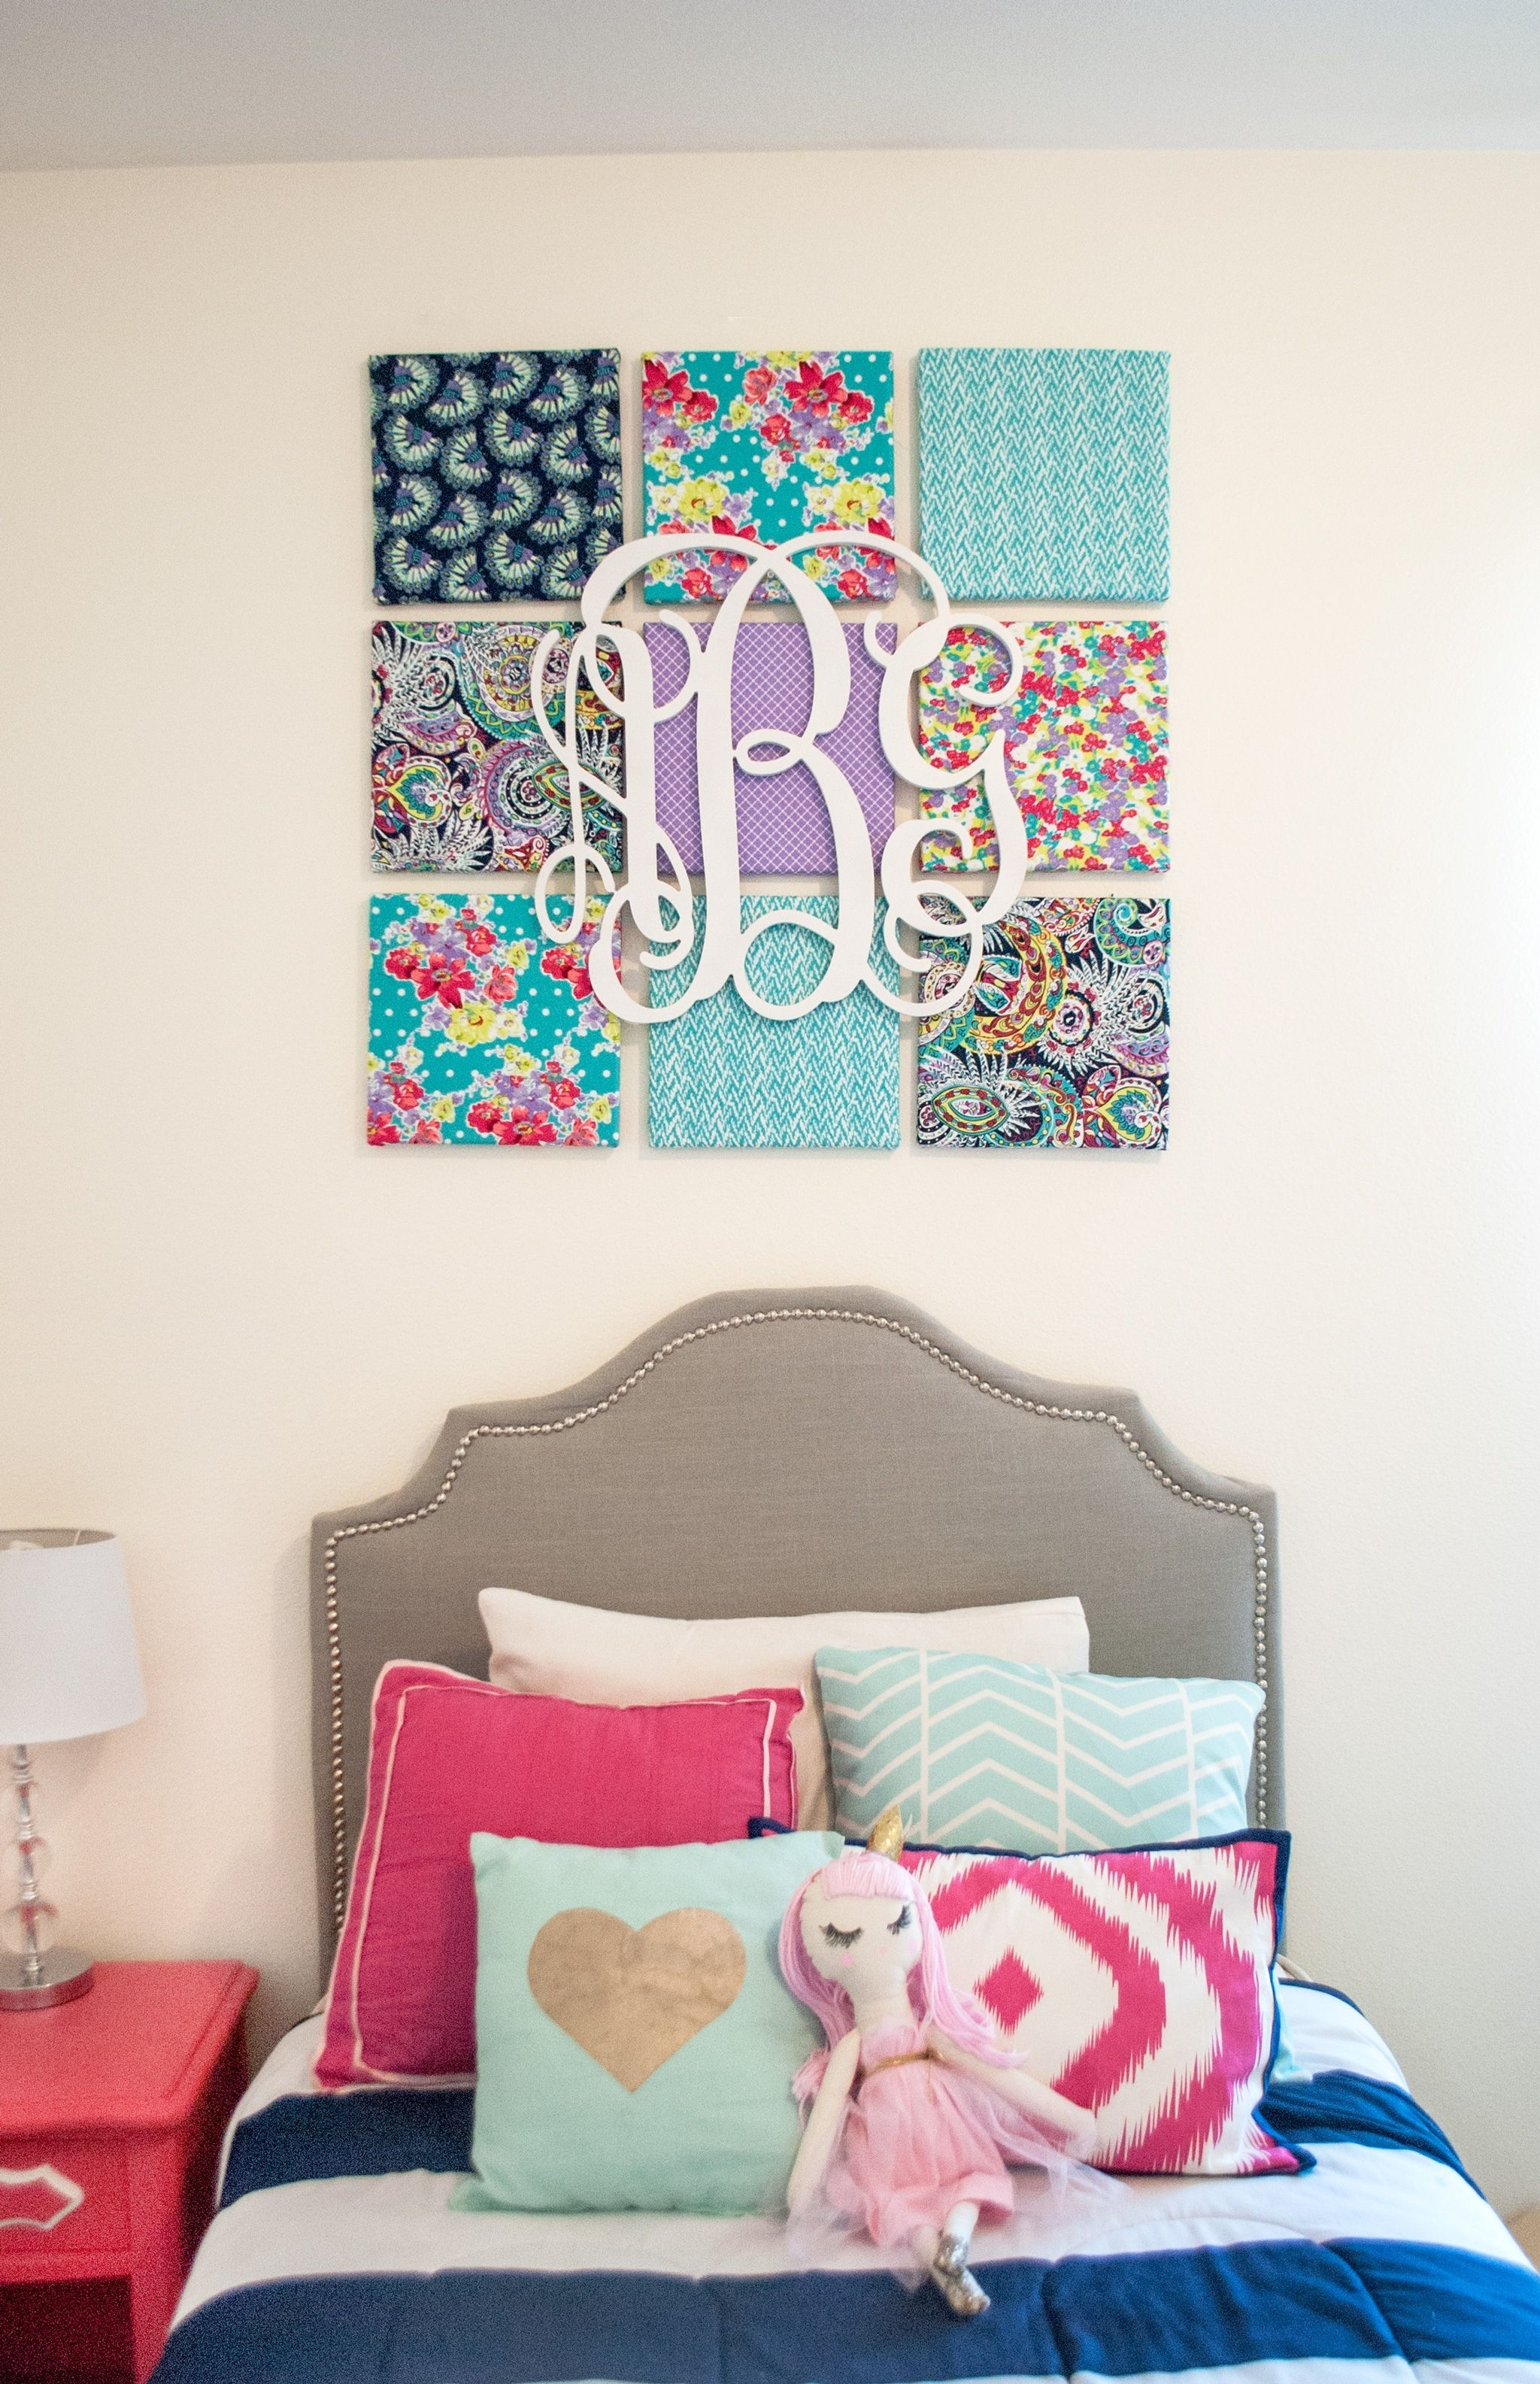 Diy Fabric Wall Art | Monogram Wall, Kids Rooms And Monograms With Regard To Most Up To Date Canvas Wall Art For Dorm Rooms (Gallery 8 of 15)